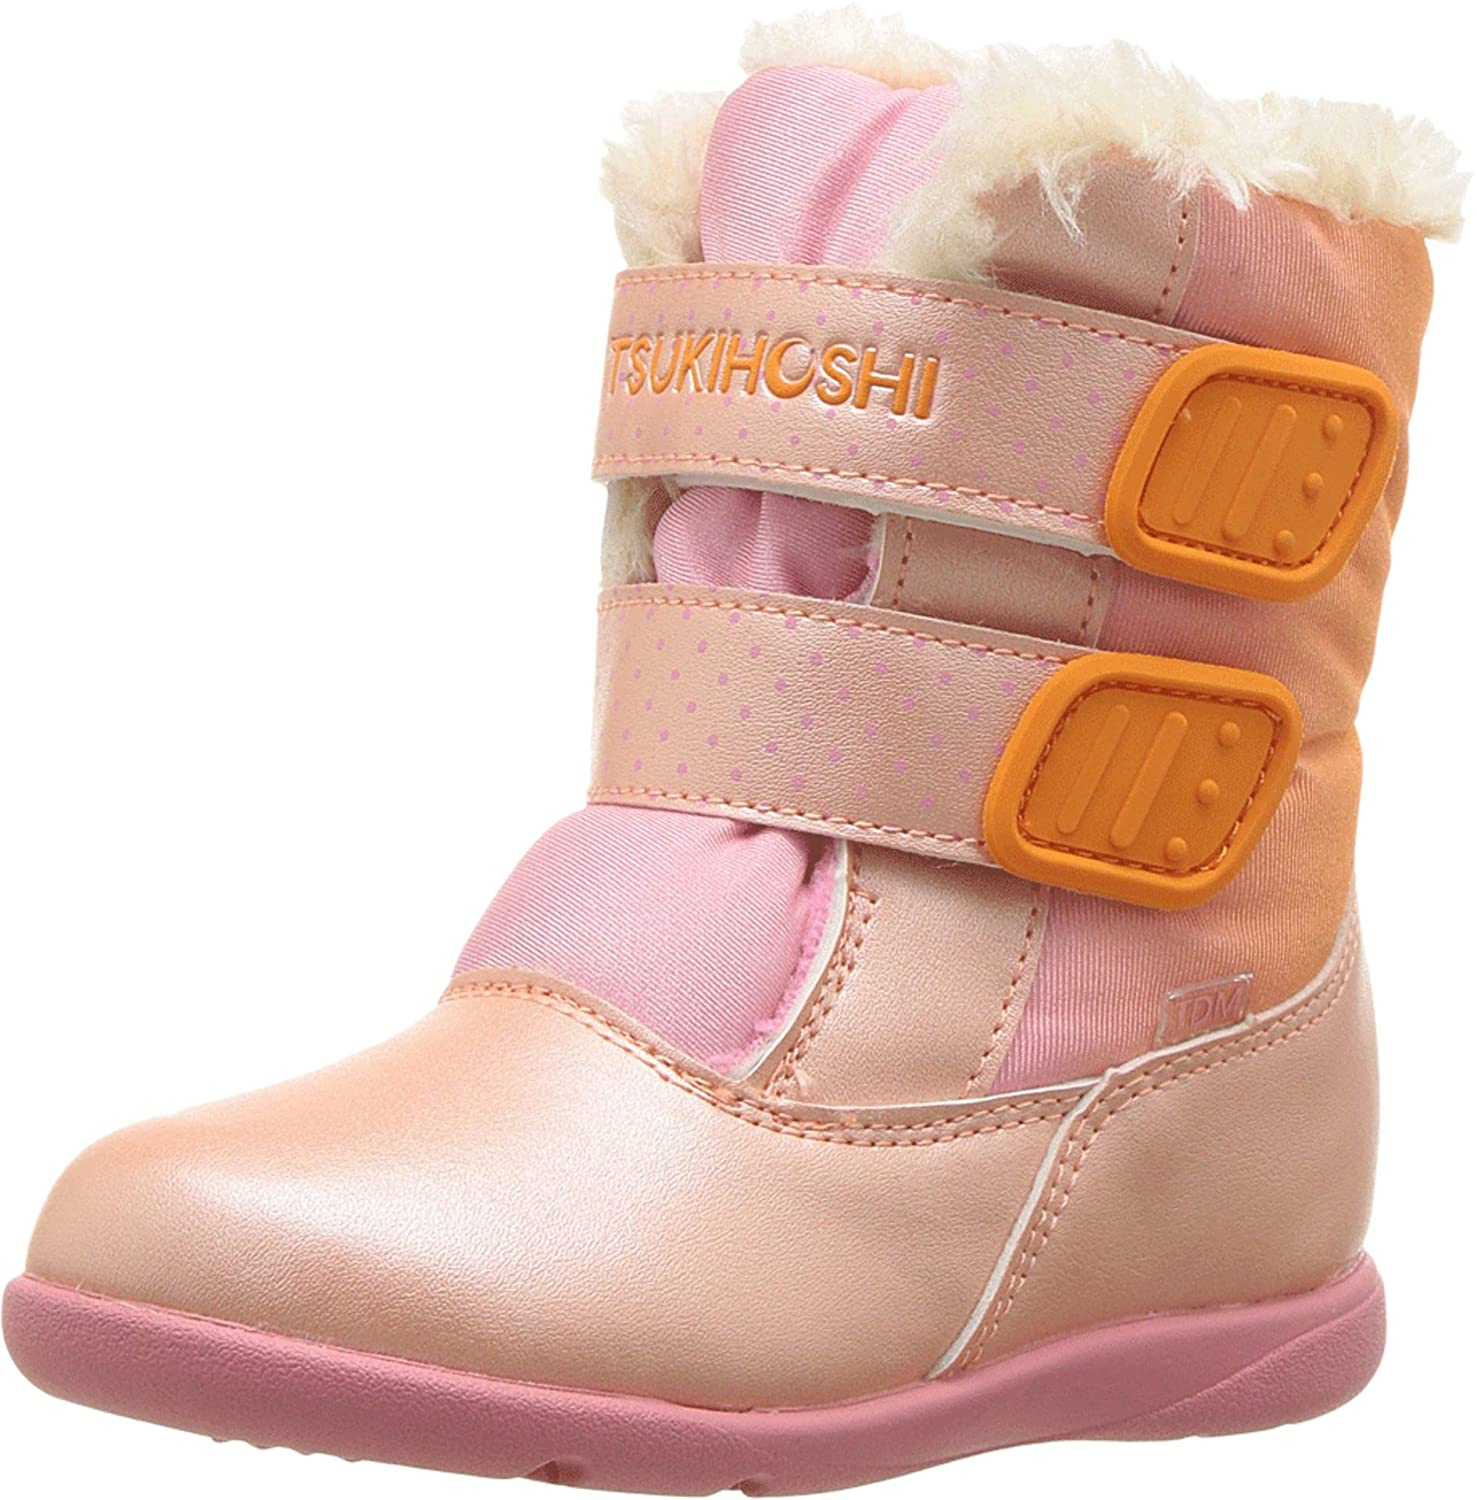 Child Tsukihoshi Teddy Boot in Peach/Pink